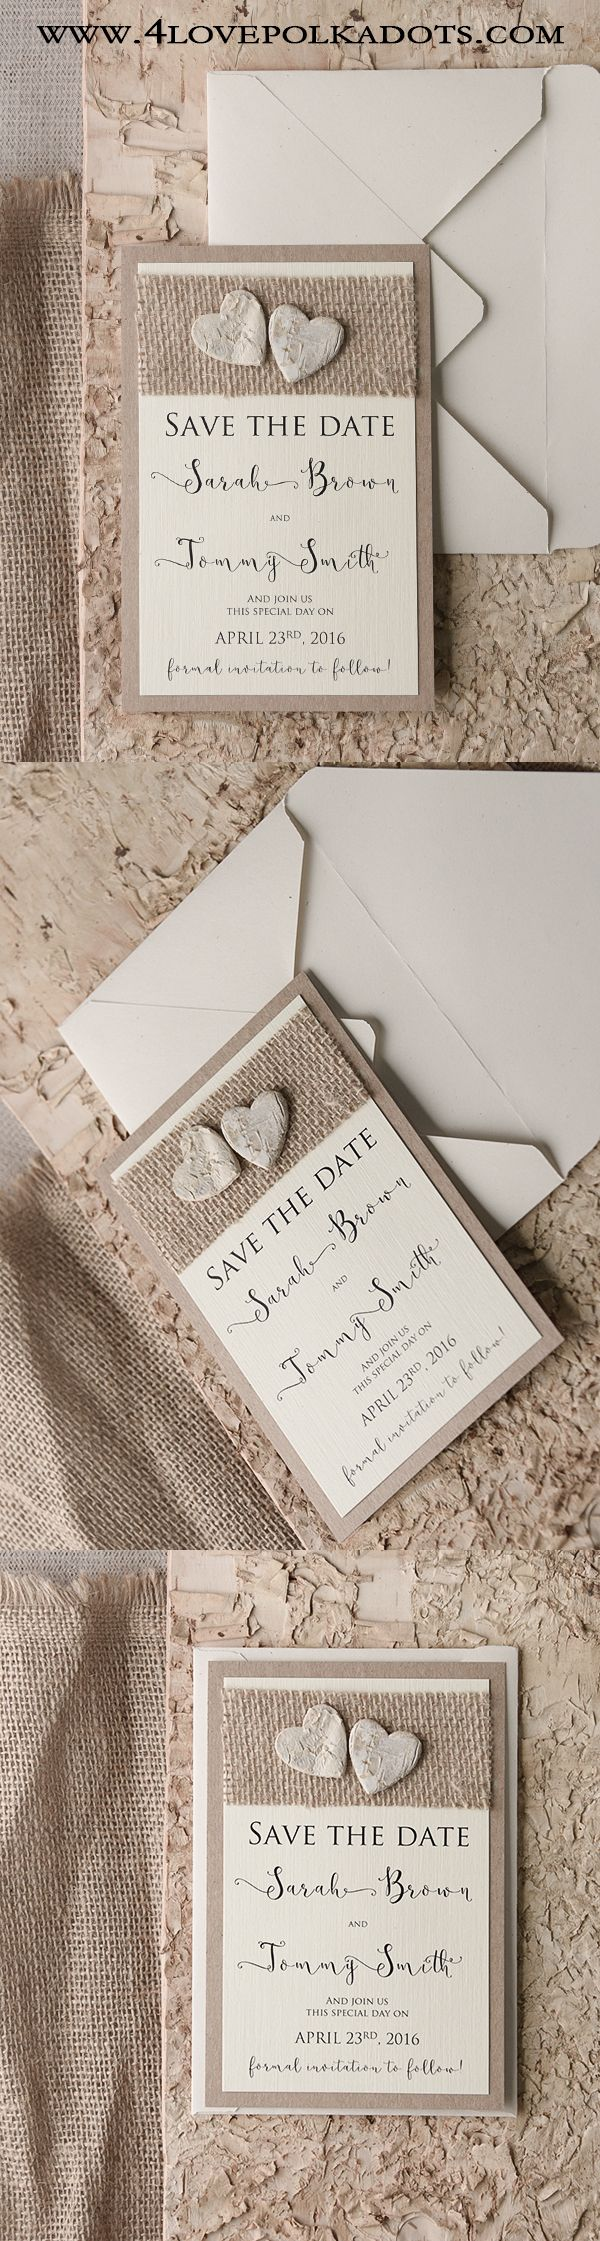 Invitation ideas SAVE THE DATES rustic